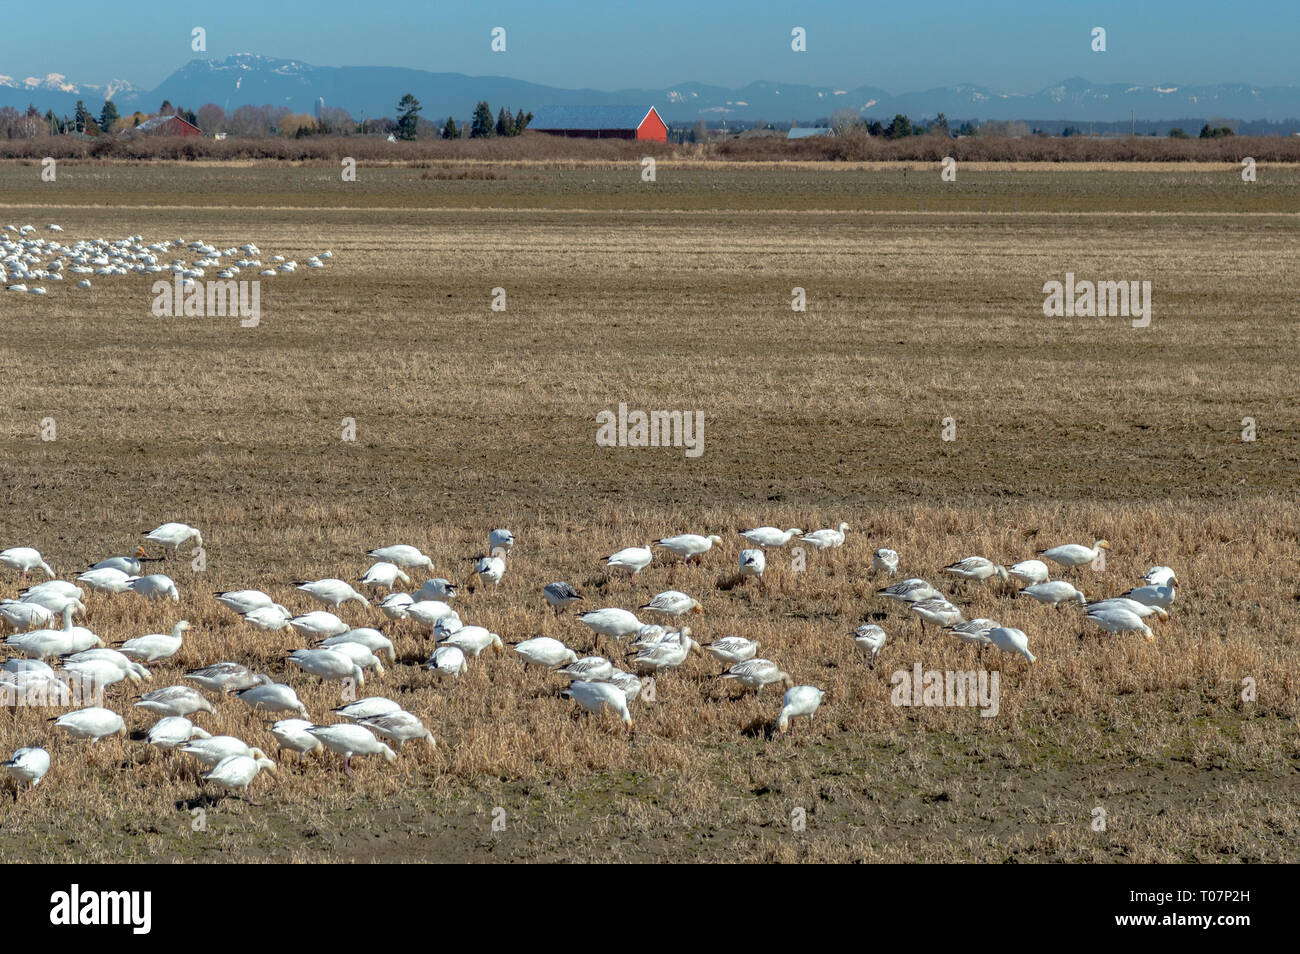 Overwintering migratory Lesser Snow Geese, Chen caerulescens, feeding and resting in an agricultural field at Brunswick Point, Ladner, BC. - Stock Image